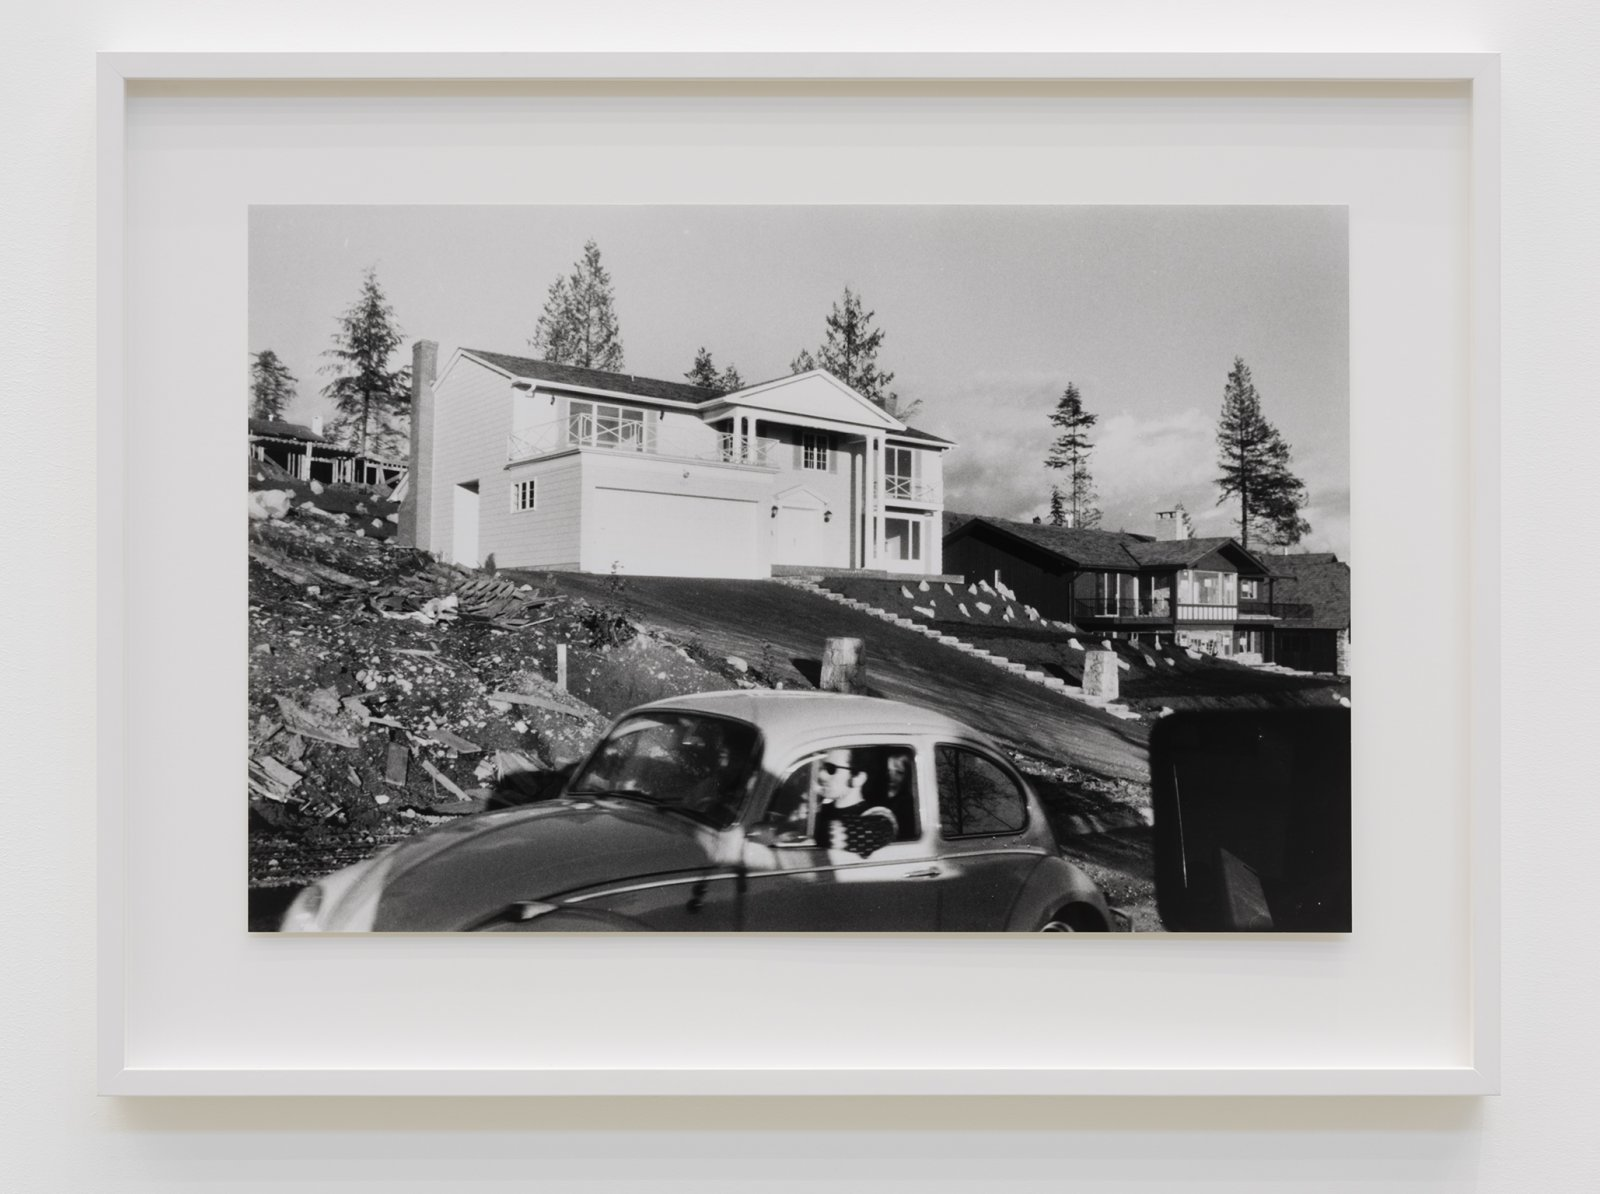 Ian Wallace, Untitled (+ Barthes' The Third Meaning), 1970–1998, silver gelatin print, 23 x 30 in. (57 x 77 cm)